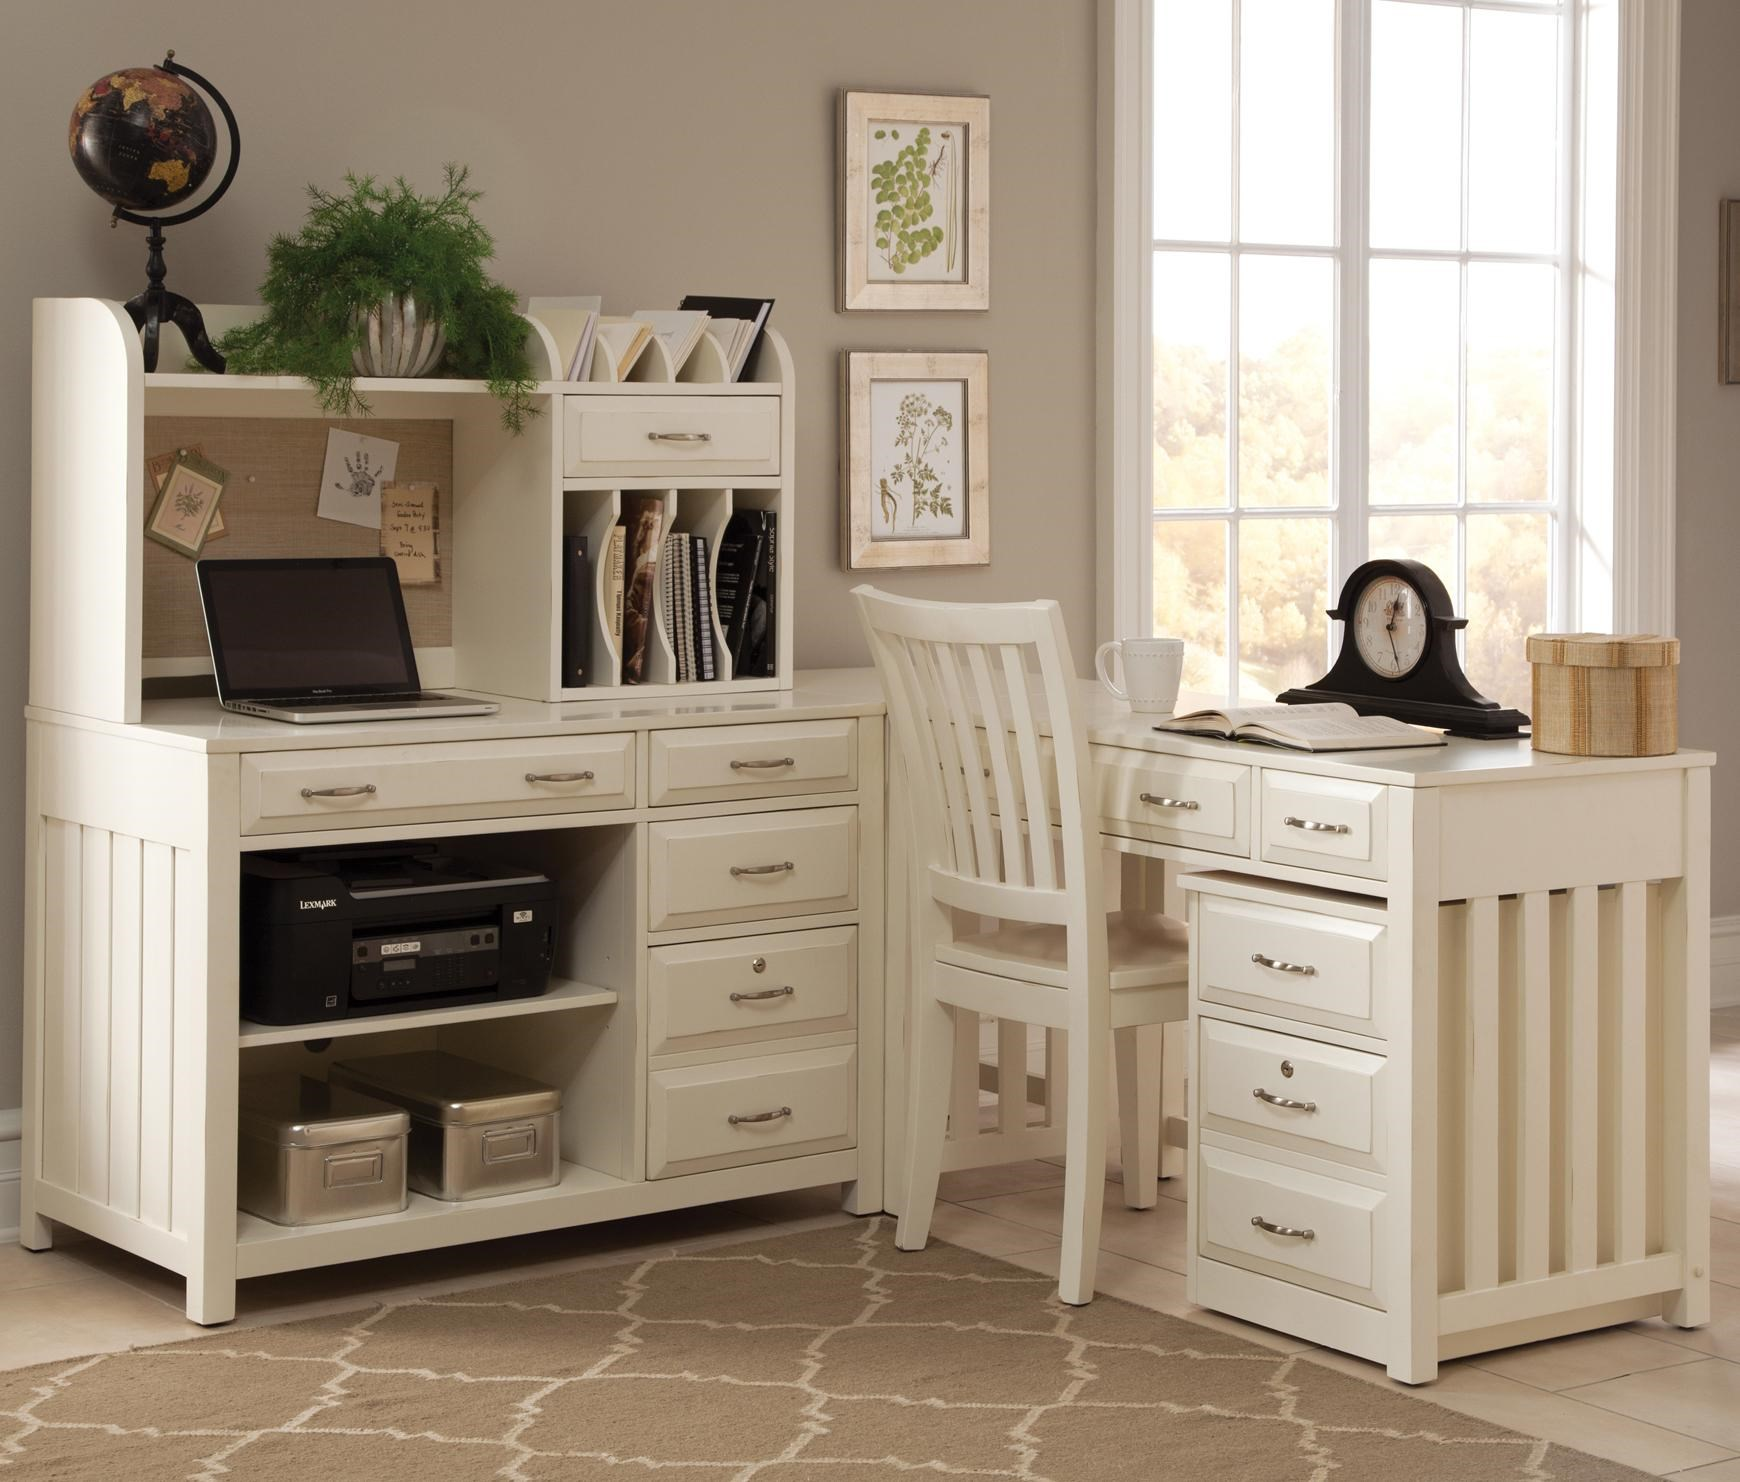 Ordinaire Liberty Furniture Hampton Bay   White 5 PC L Shaped Desk And File CHAIR